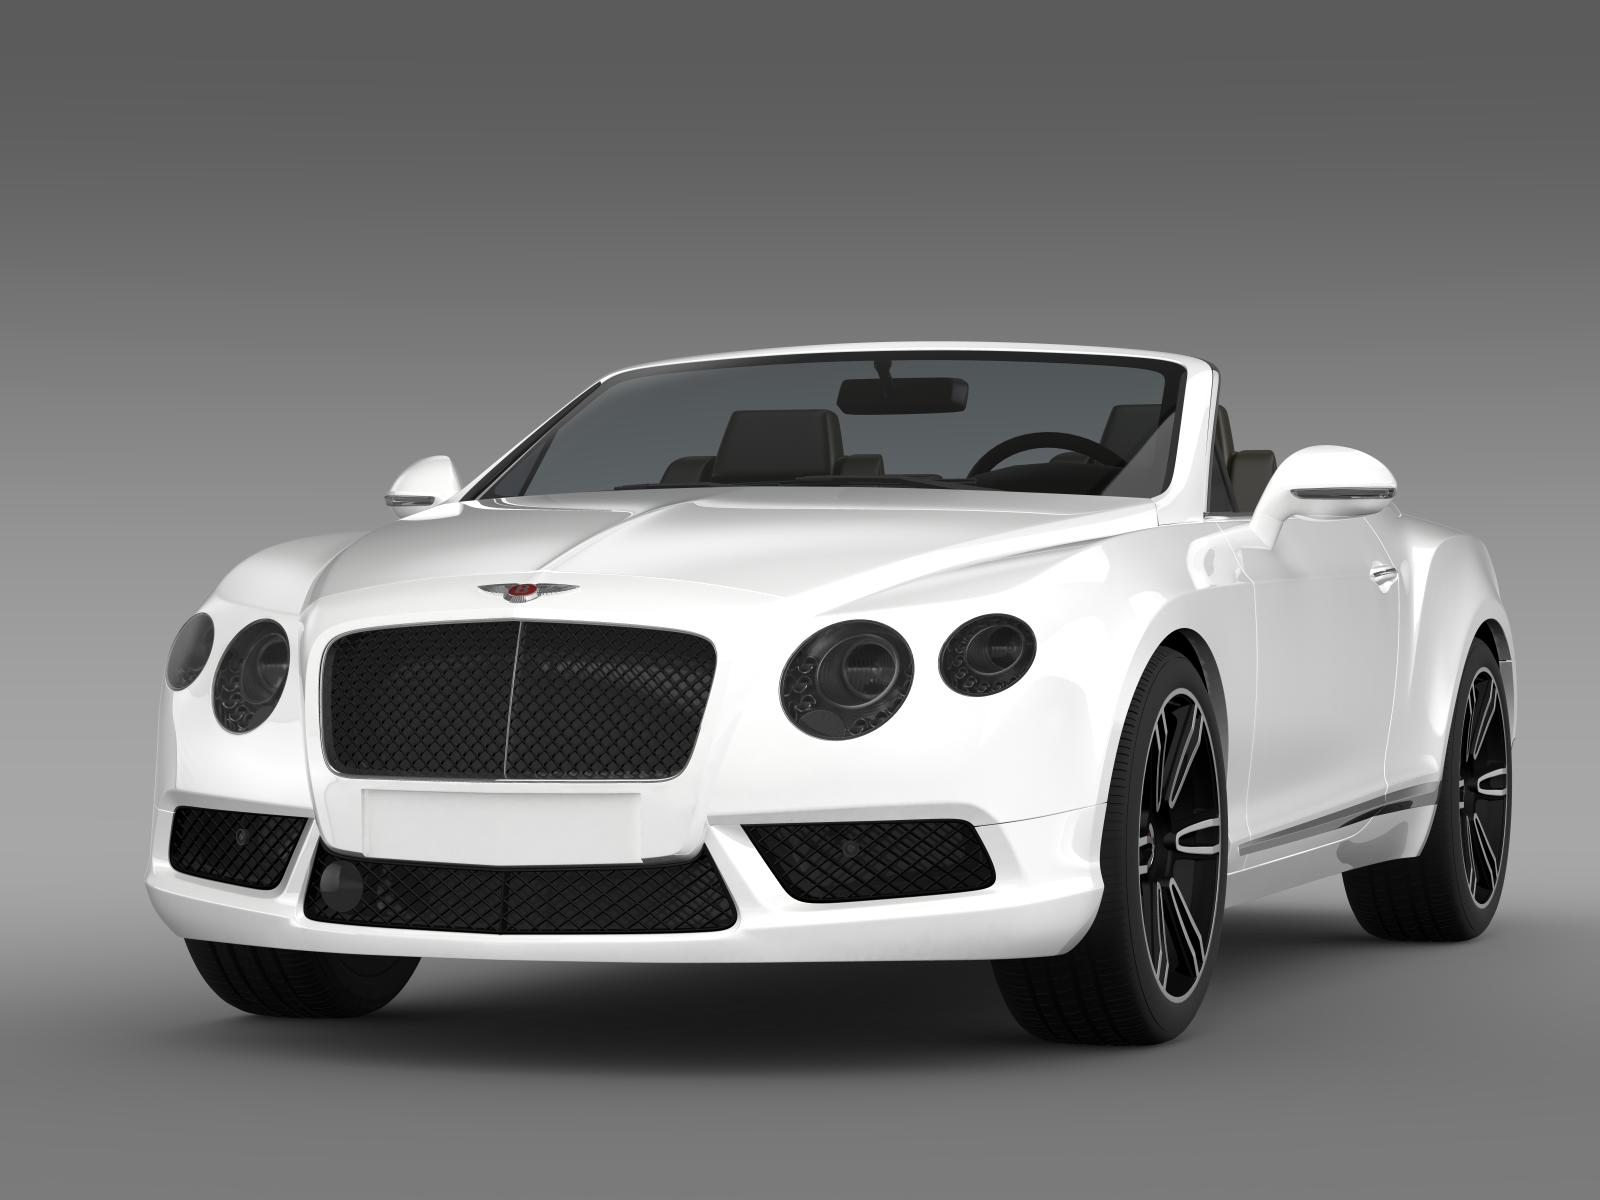 2013 bentley continental gtc v8 3d model 3ds max fbx c4d